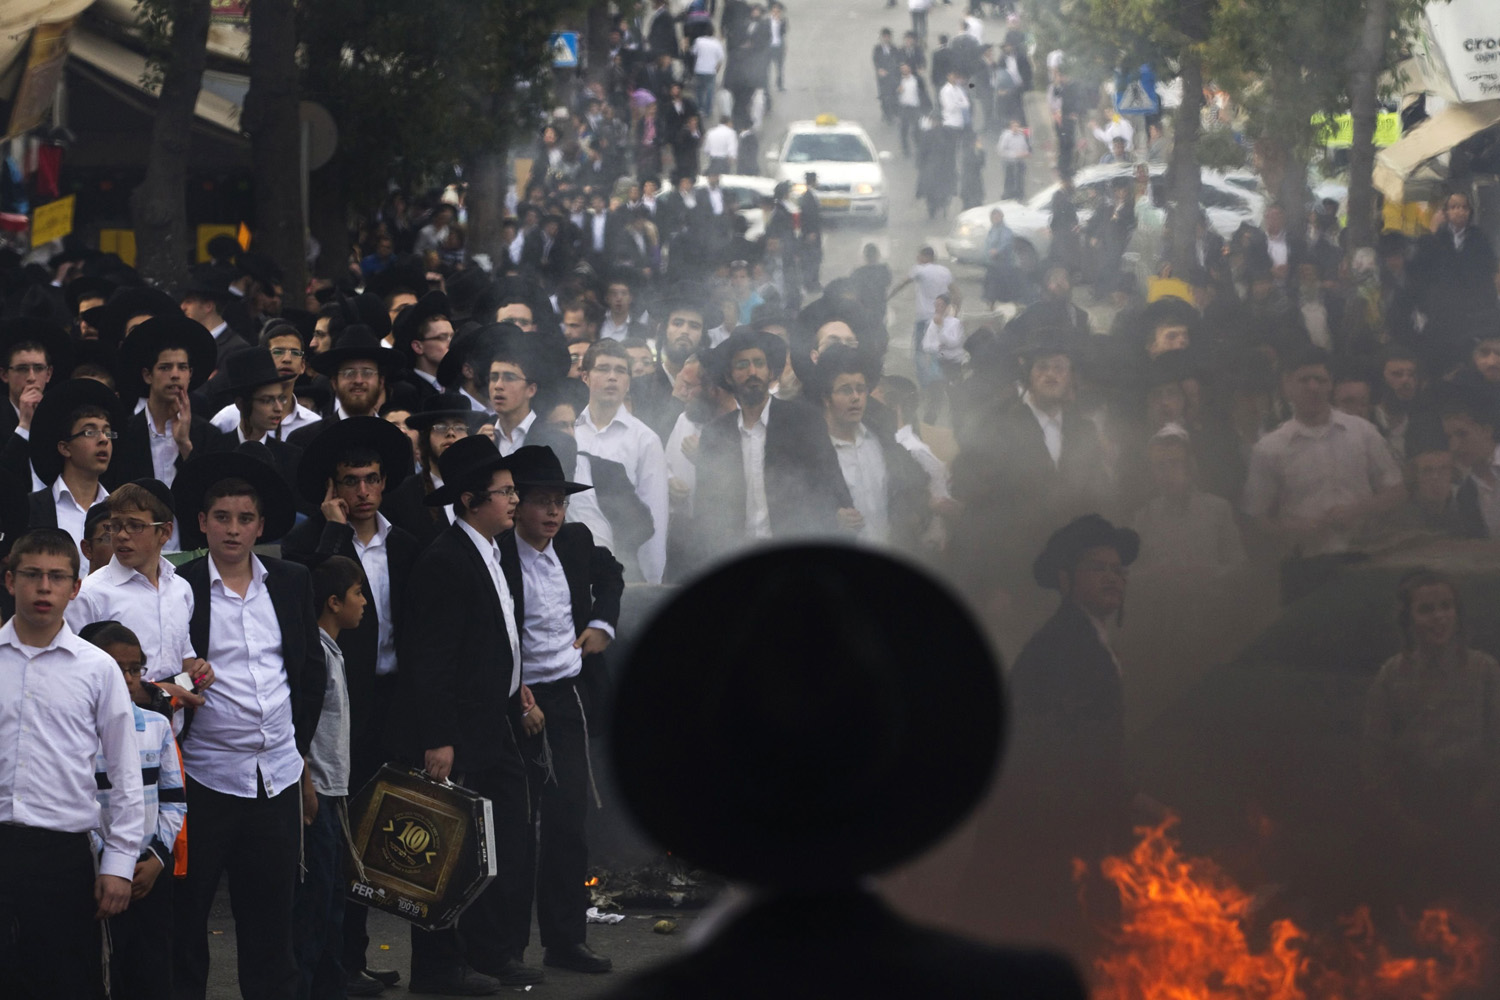 Apr. 10, 2014. Ultra-Orthodox Jewish men and youths stand next to a fire during a protest in Jerusalem's Mea Shearim neighbourhood. Hundreds of ultra-Orthodox Jewish men protested on Thursday against the jailing of a Jewish seminary student who failed to comply with a recruitment order.